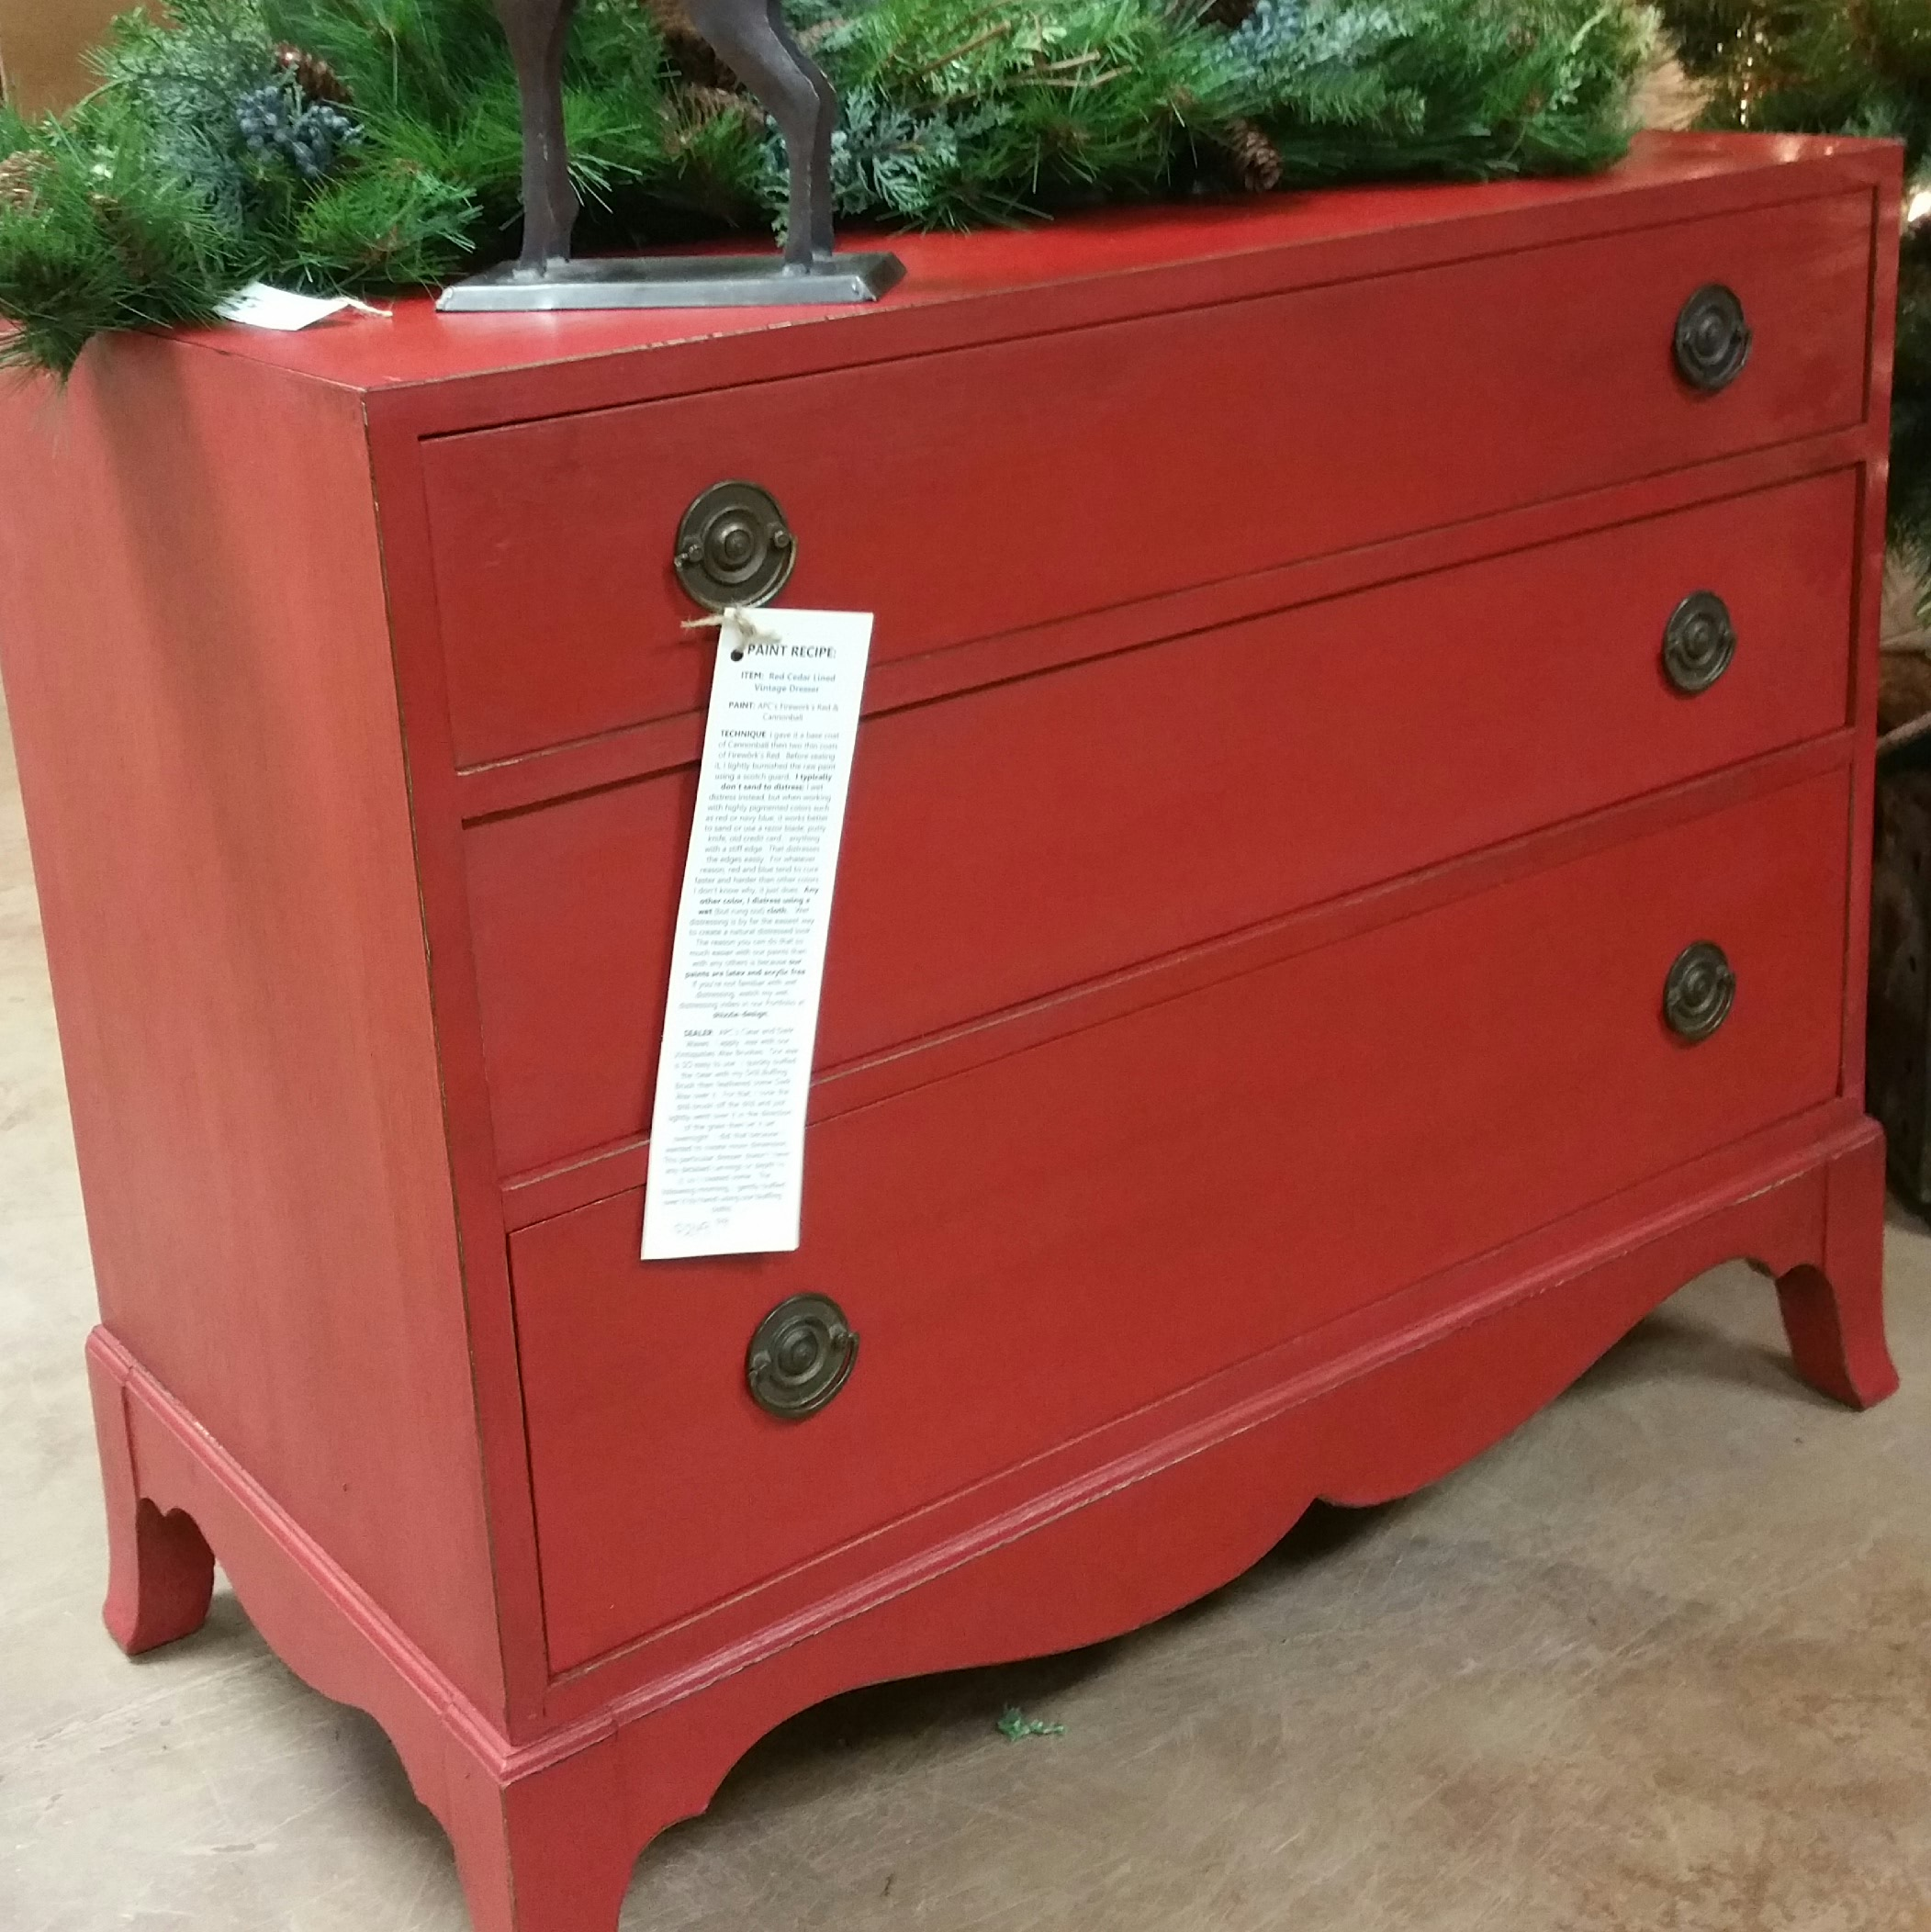 This Yearu0027s Little Red Dresser along with